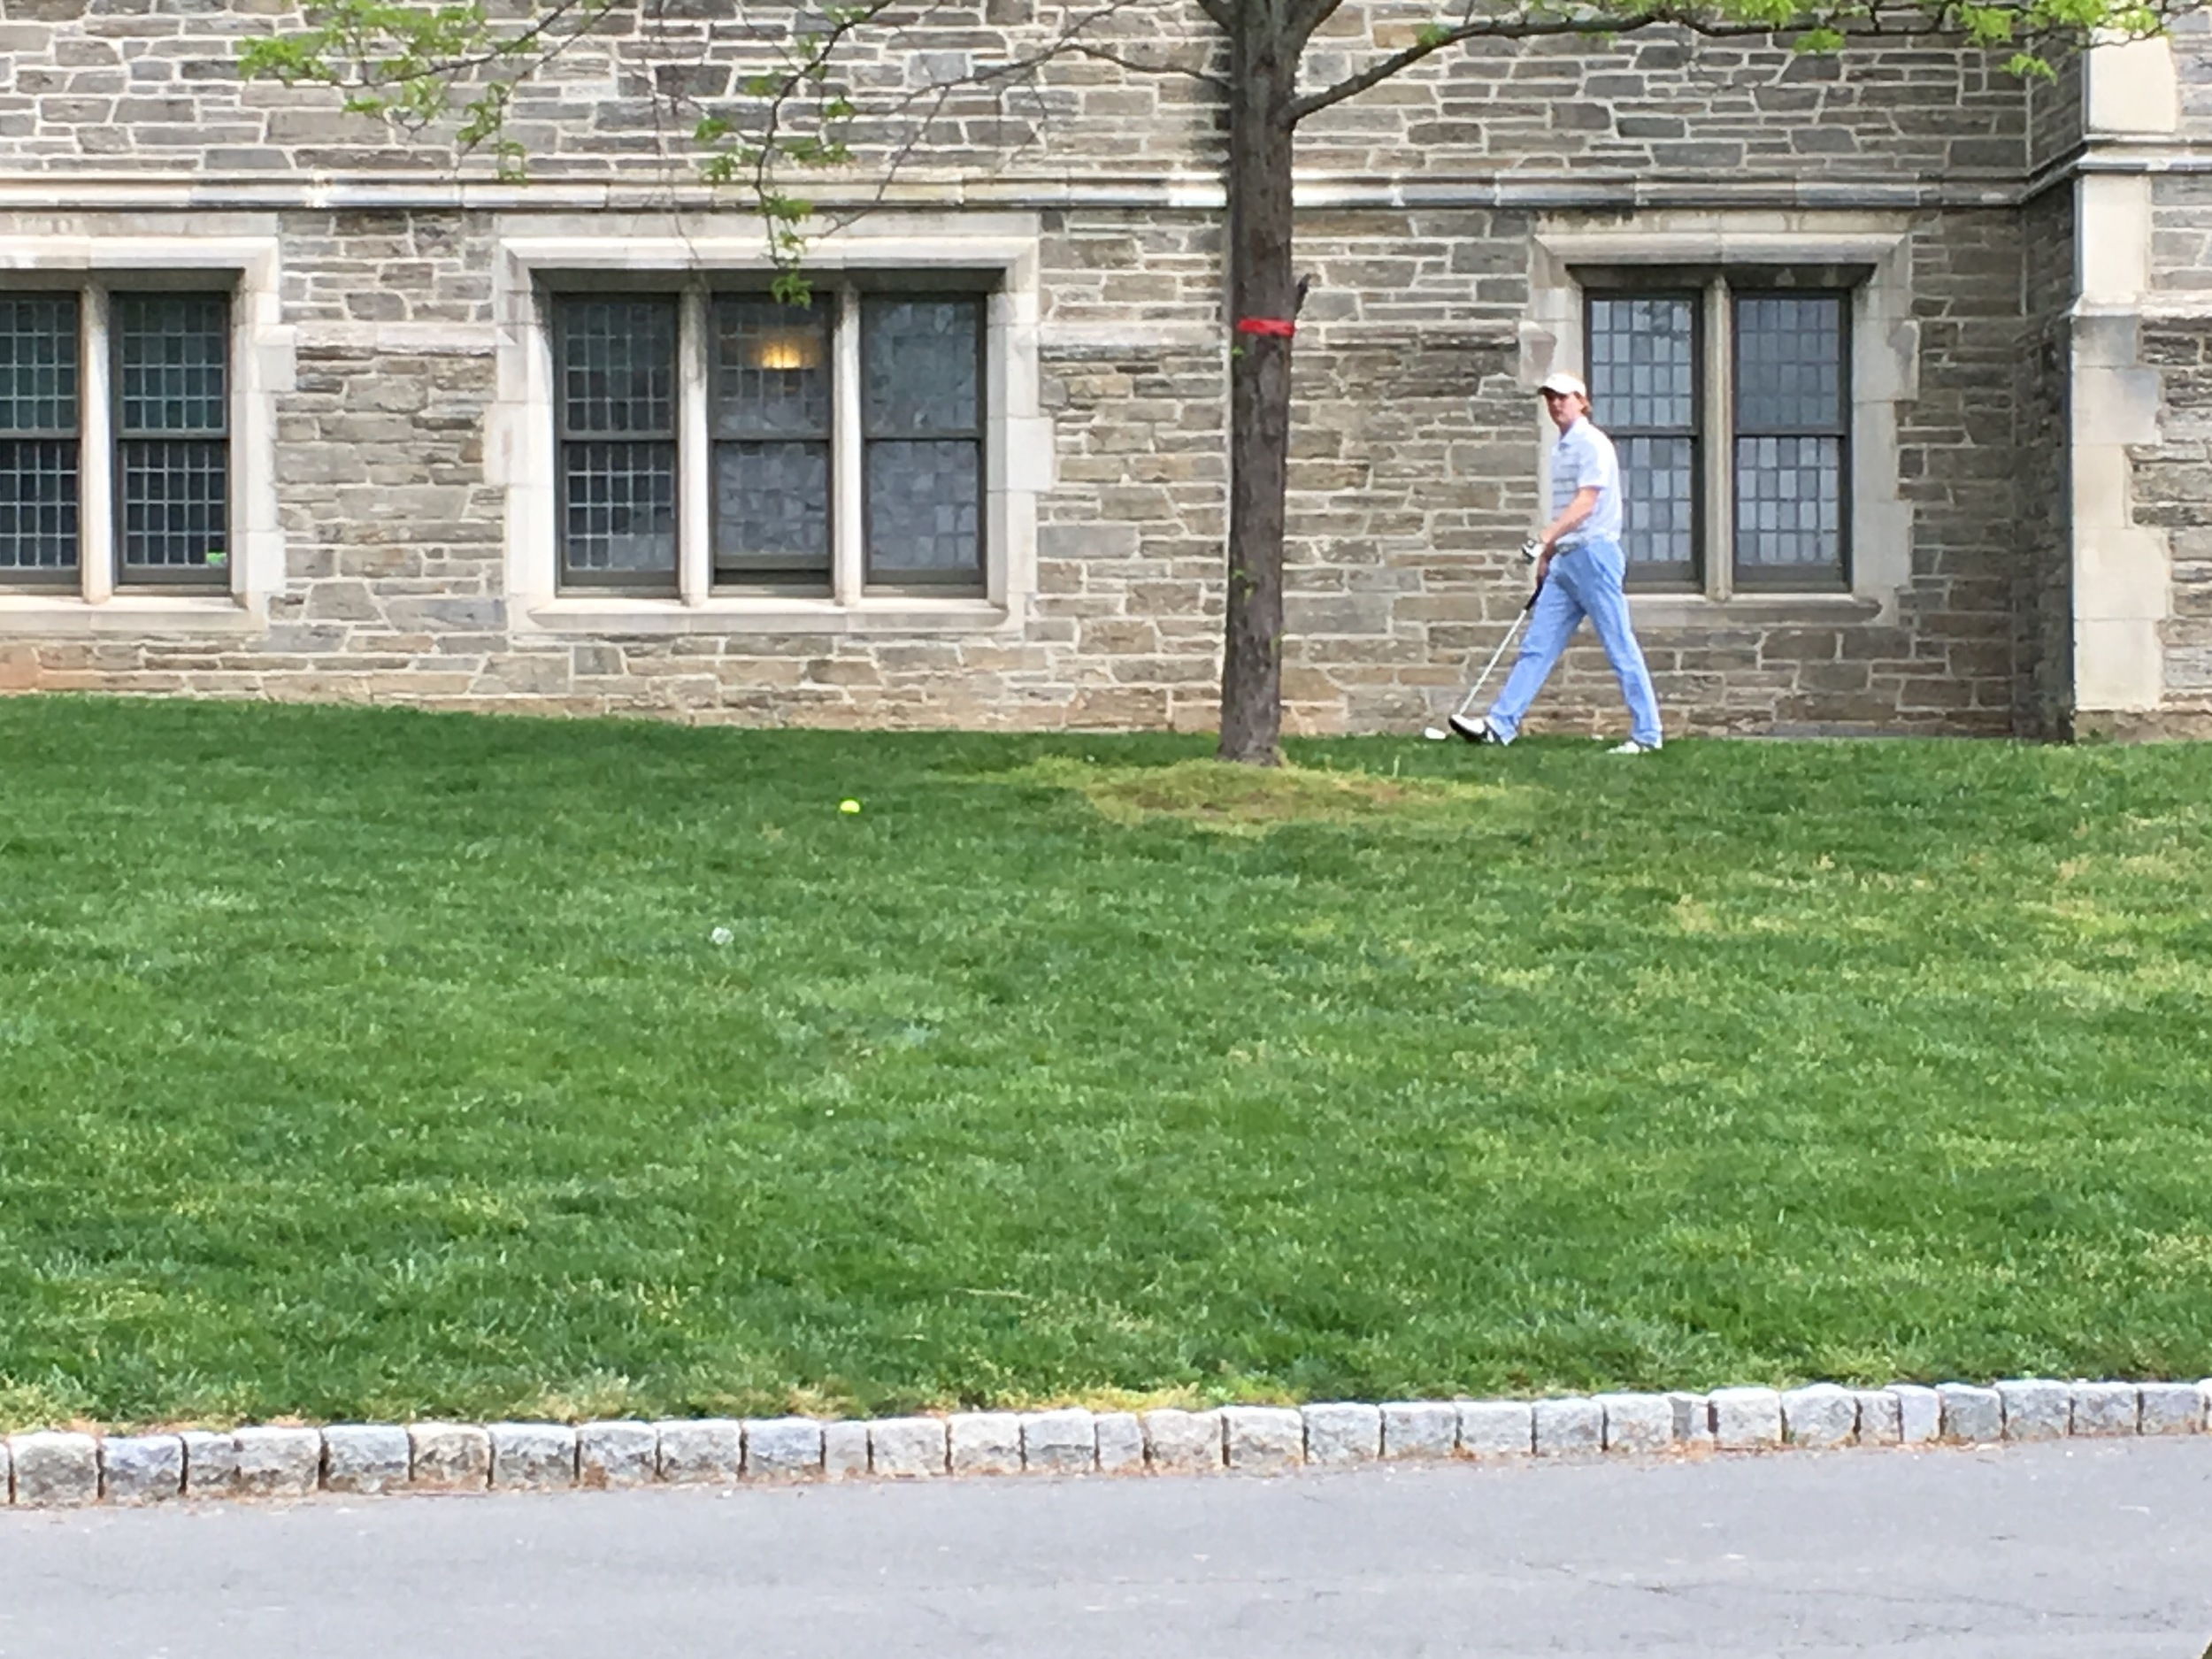 Murilo thought these guys walking around campus playing golf were hilarious.